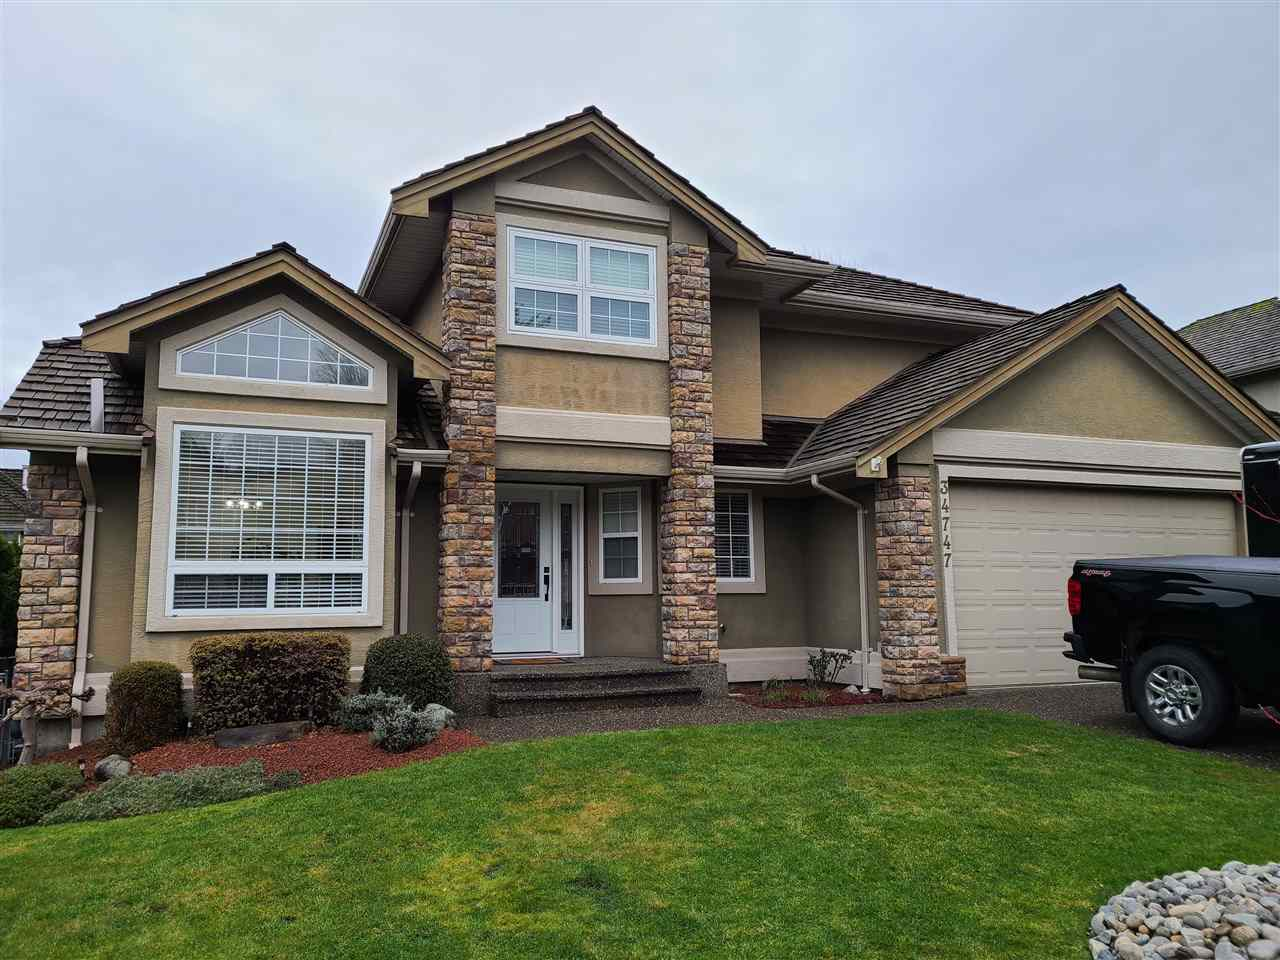 34747 MILLSTONE WAY - Abbotsford East House/Single Family for sale, 6 Bedrooms (R2528756) - #1